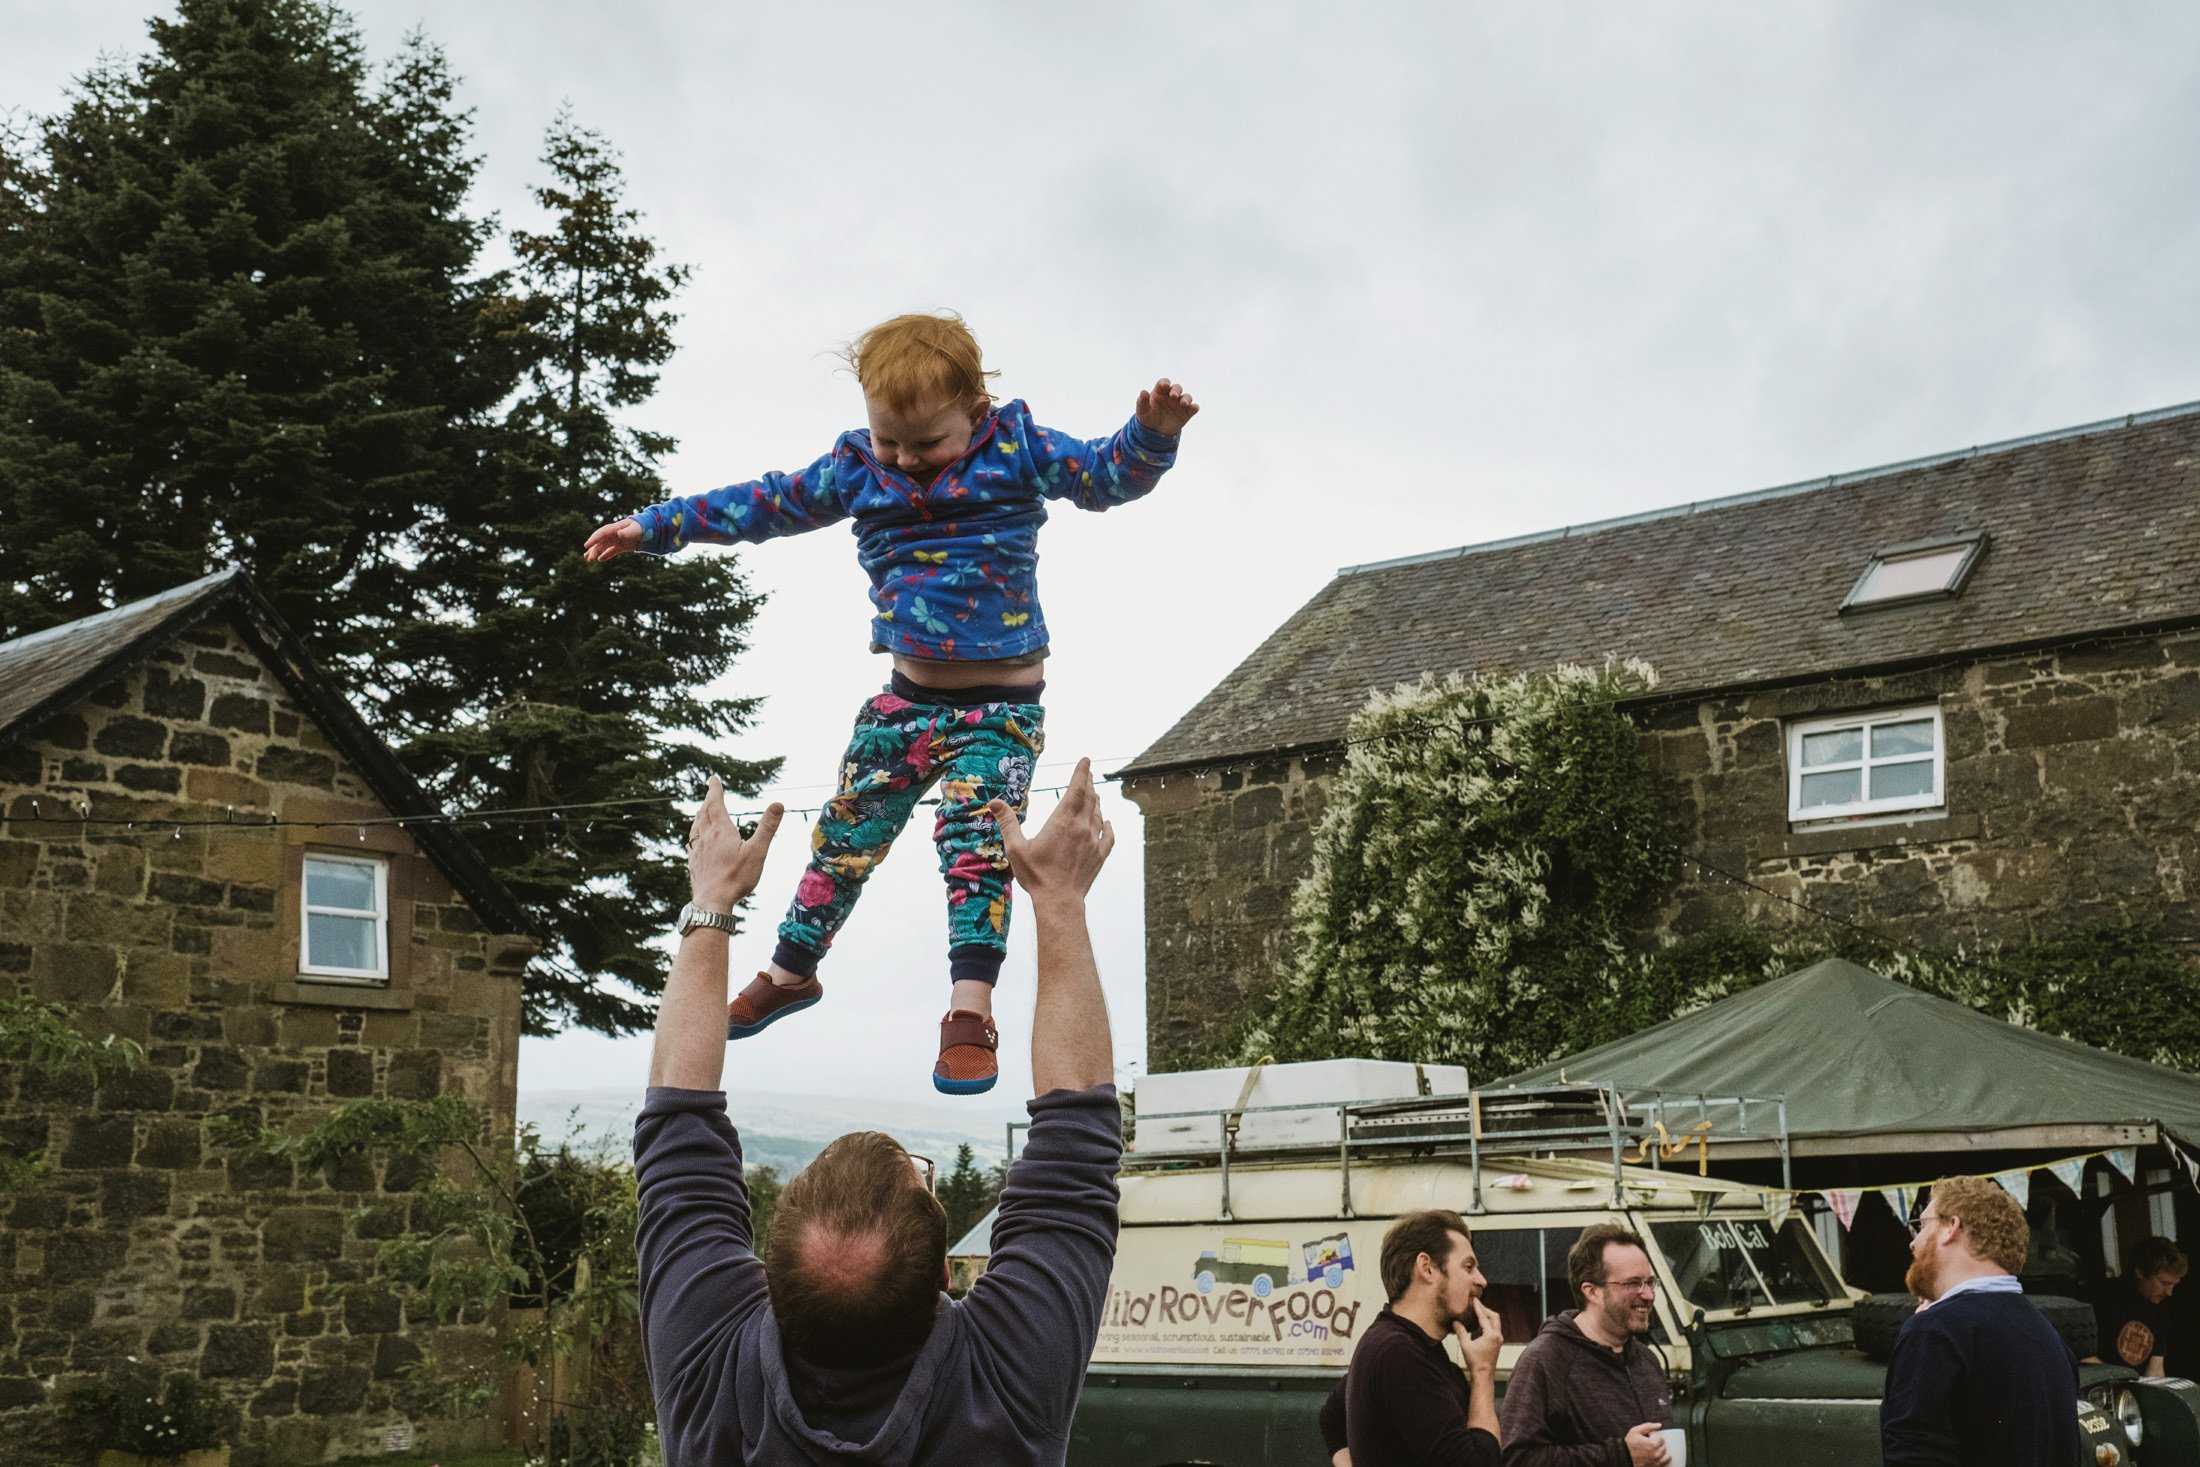 Reportage wedding photography at Comrie Croft, Scotland. Child thrown into the air (playfully) by a parent